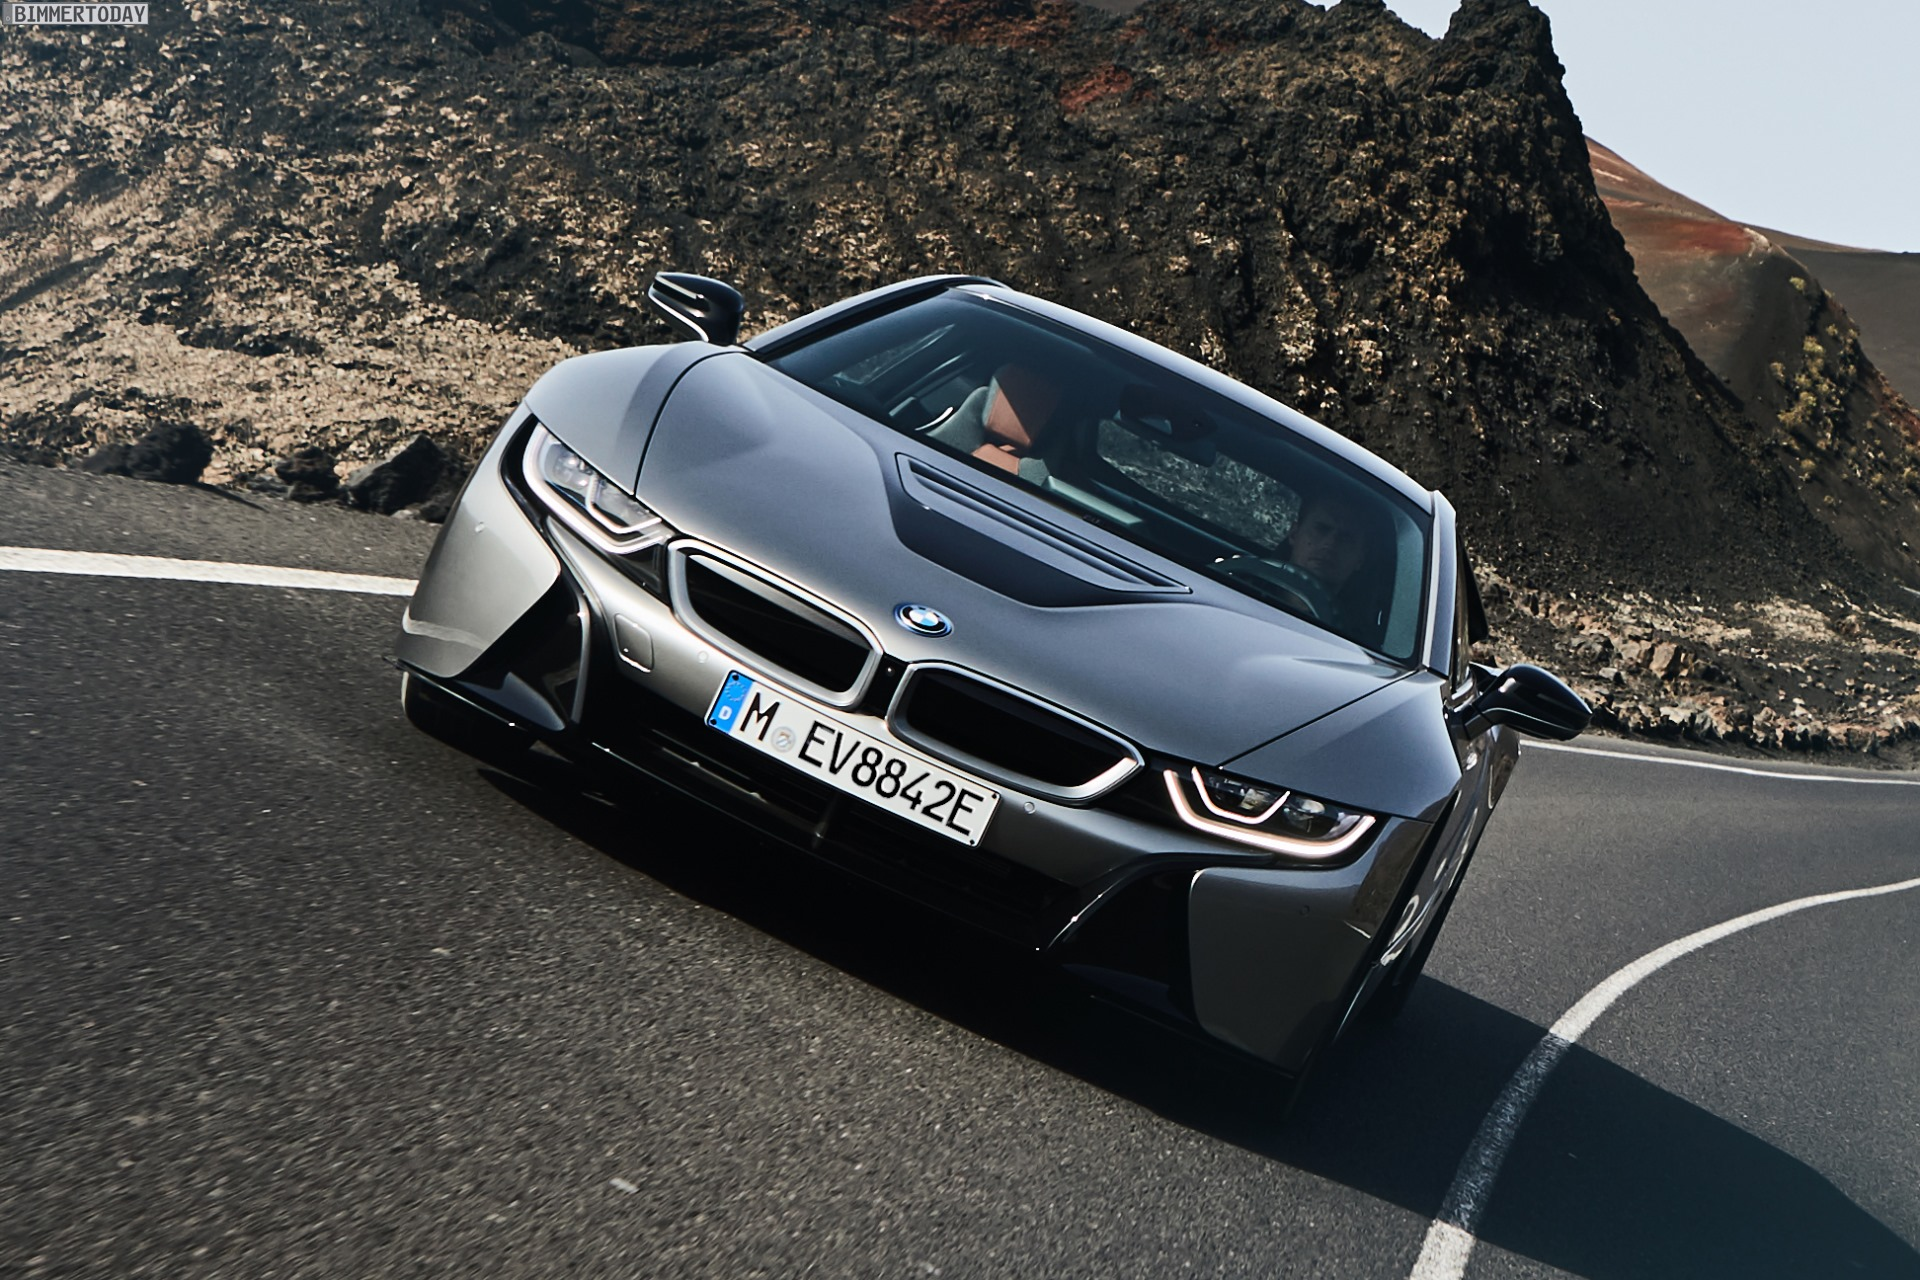 bmw i8 facelift 2018 374 ps und 55 km elektro reichweite. Black Bedroom Furniture Sets. Home Design Ideas